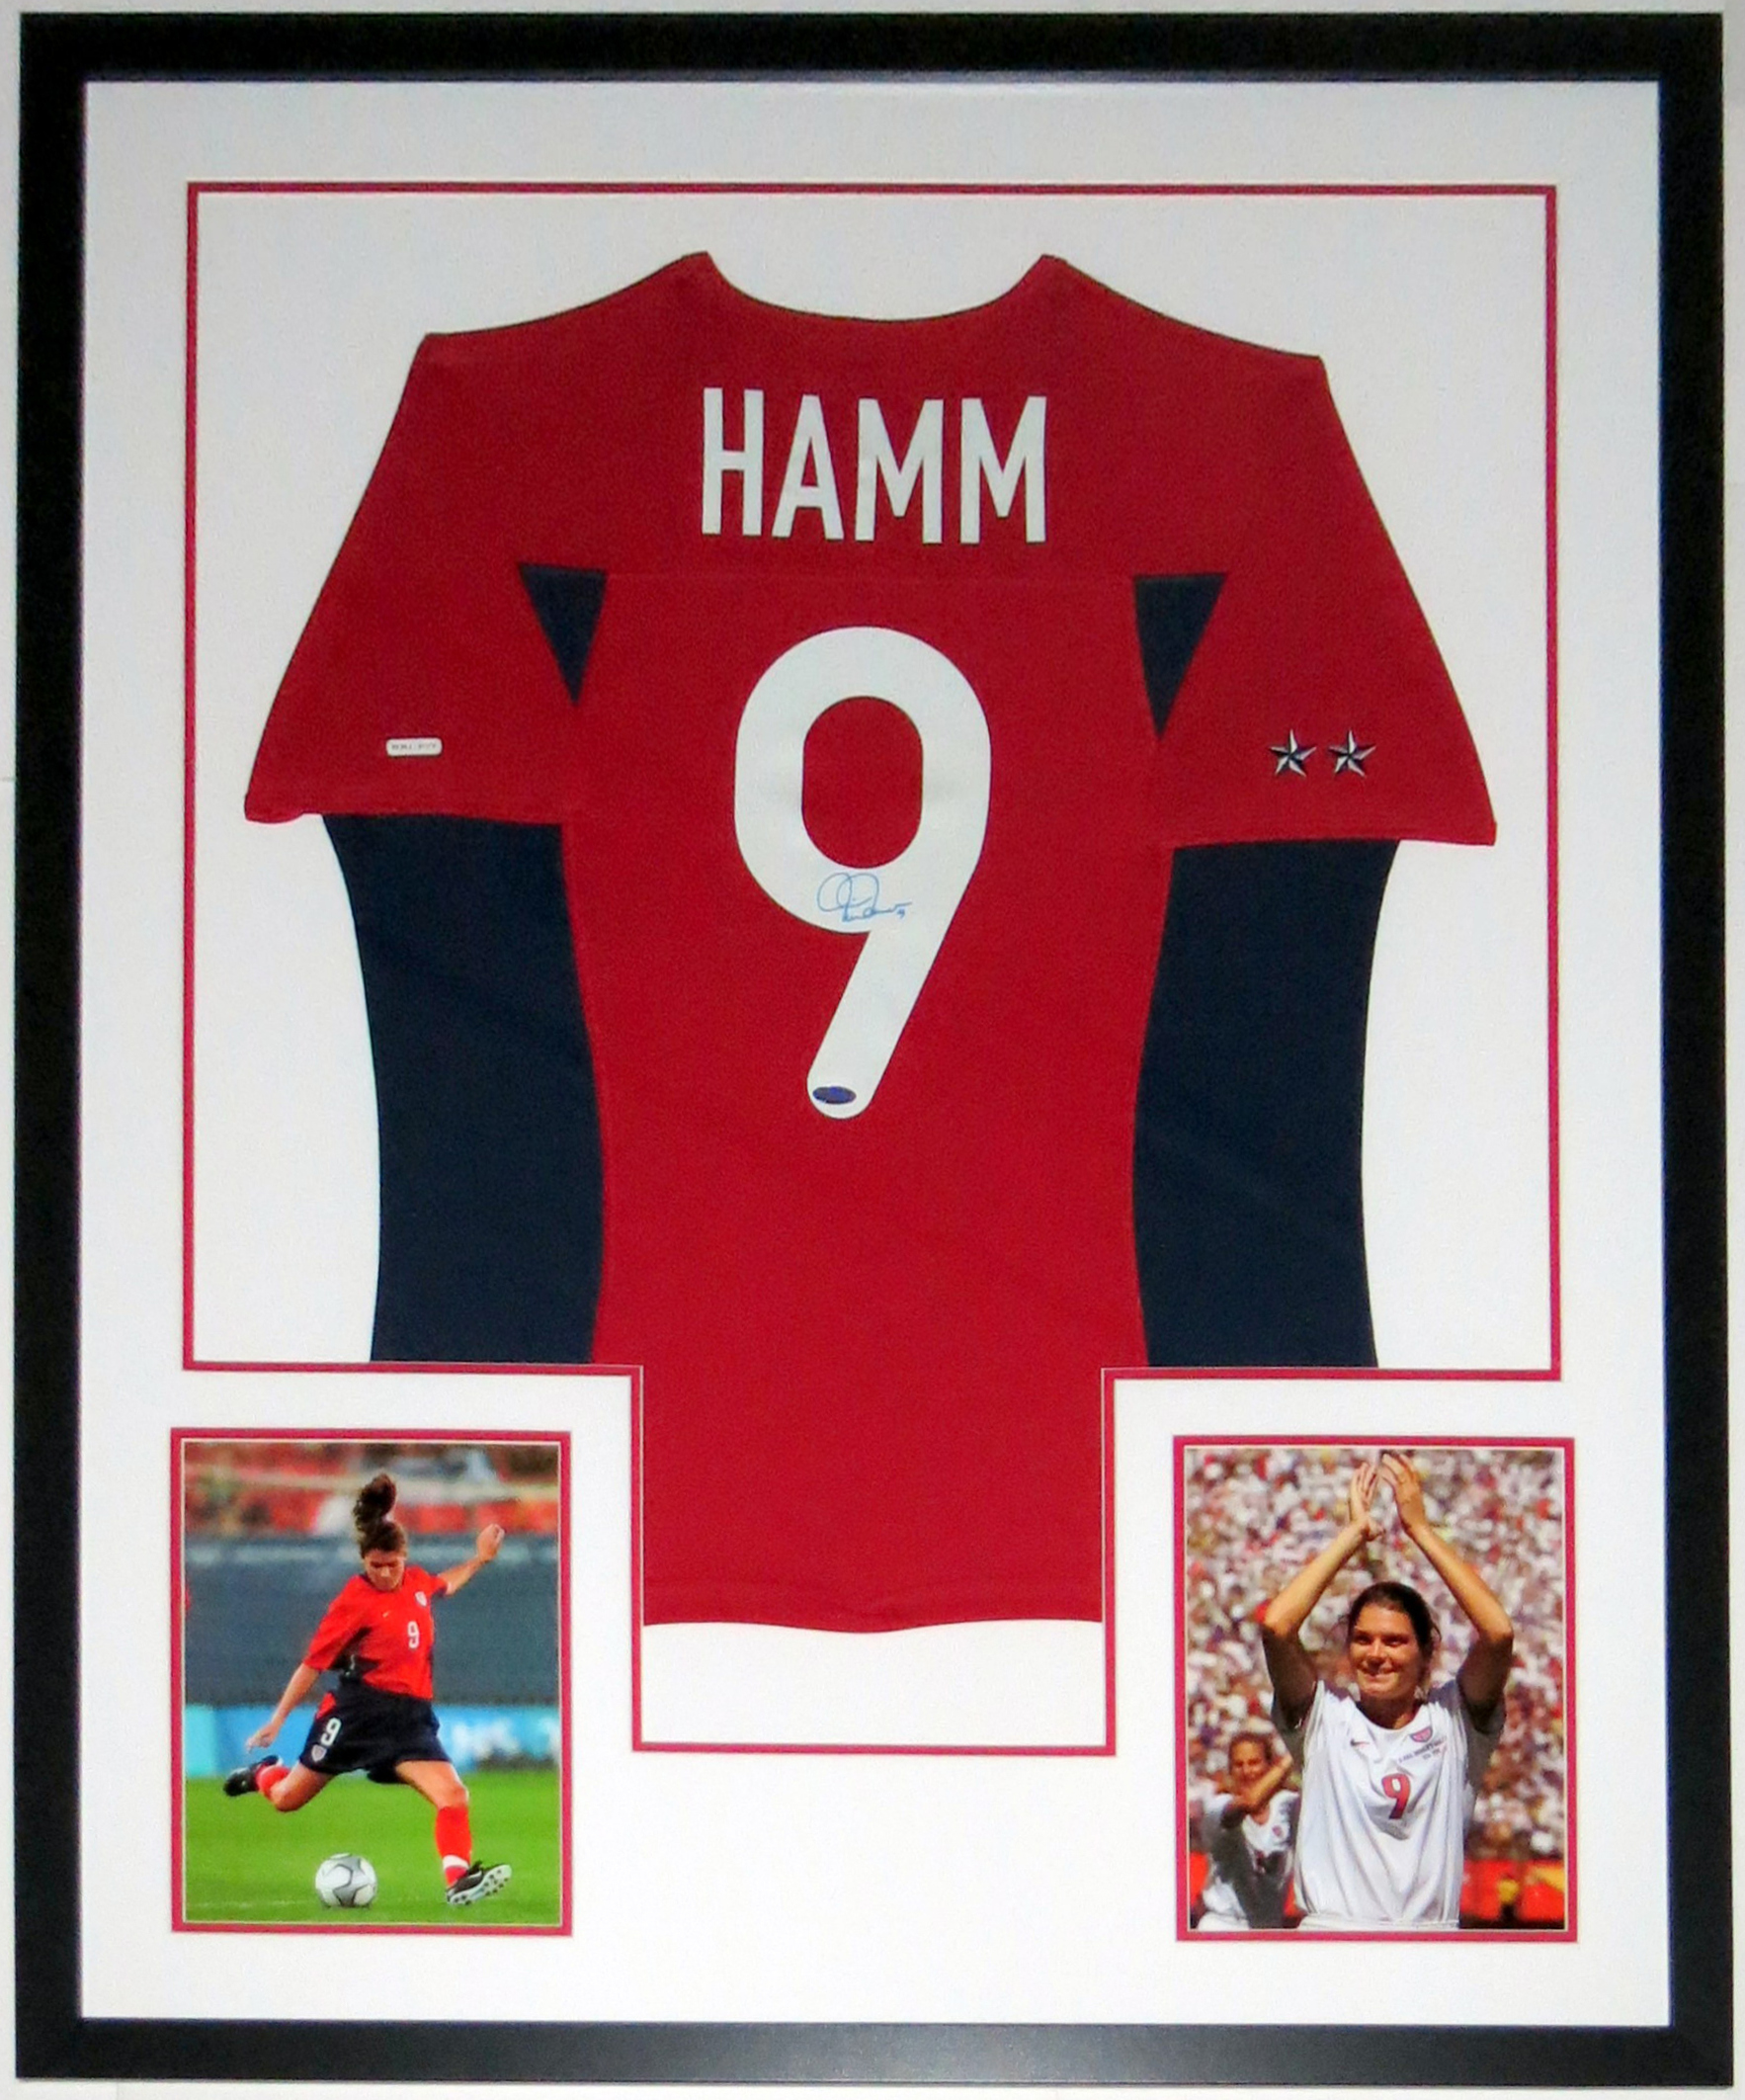 Mia Hamm Signed Team USA Nike Jersey - Steiner Sports COA Authenticated - Professionally Framed & World Cup 8x10 Photo 34x42